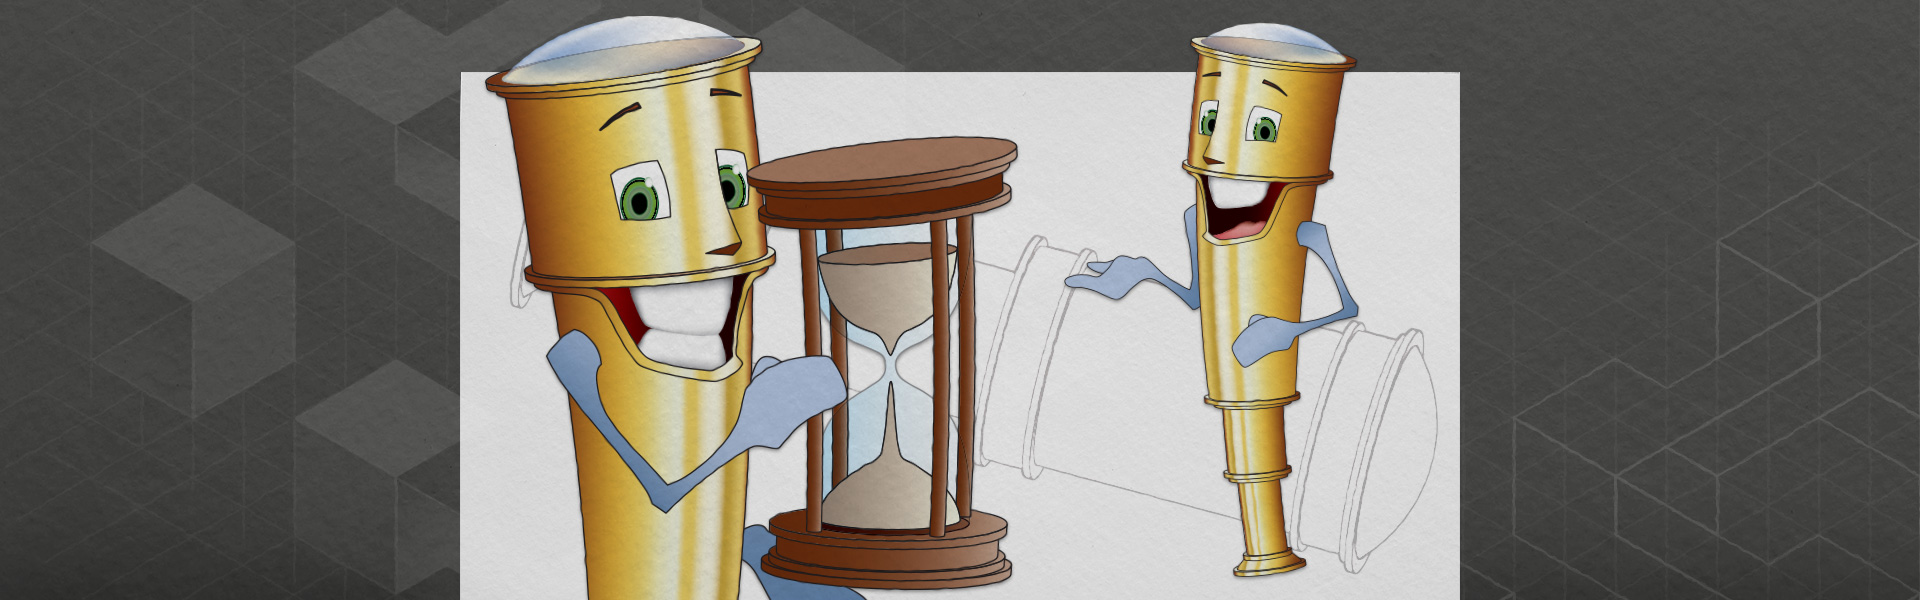 Illustration showing two samples of a cartoon telescope character, named Tully.